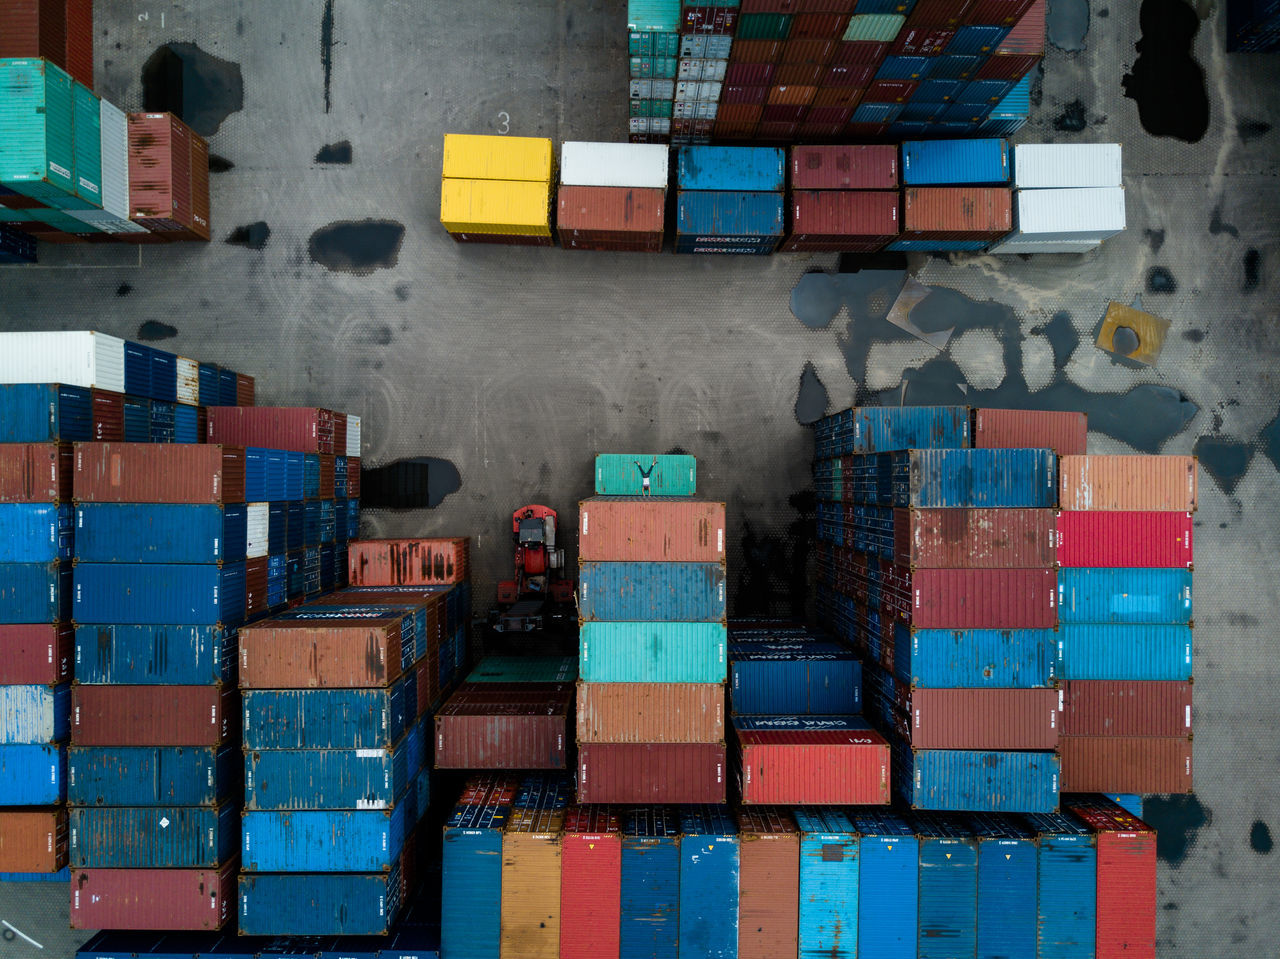 Arrangement Box - Container Business Cargo Container Container Container Day Distribution Warehouse Dronephotography Droneshot Freight Transportation Hamburg Handstand  Indoors  Industry Large Group Of Objects Multi Colored Shipping  Stack Warehouse